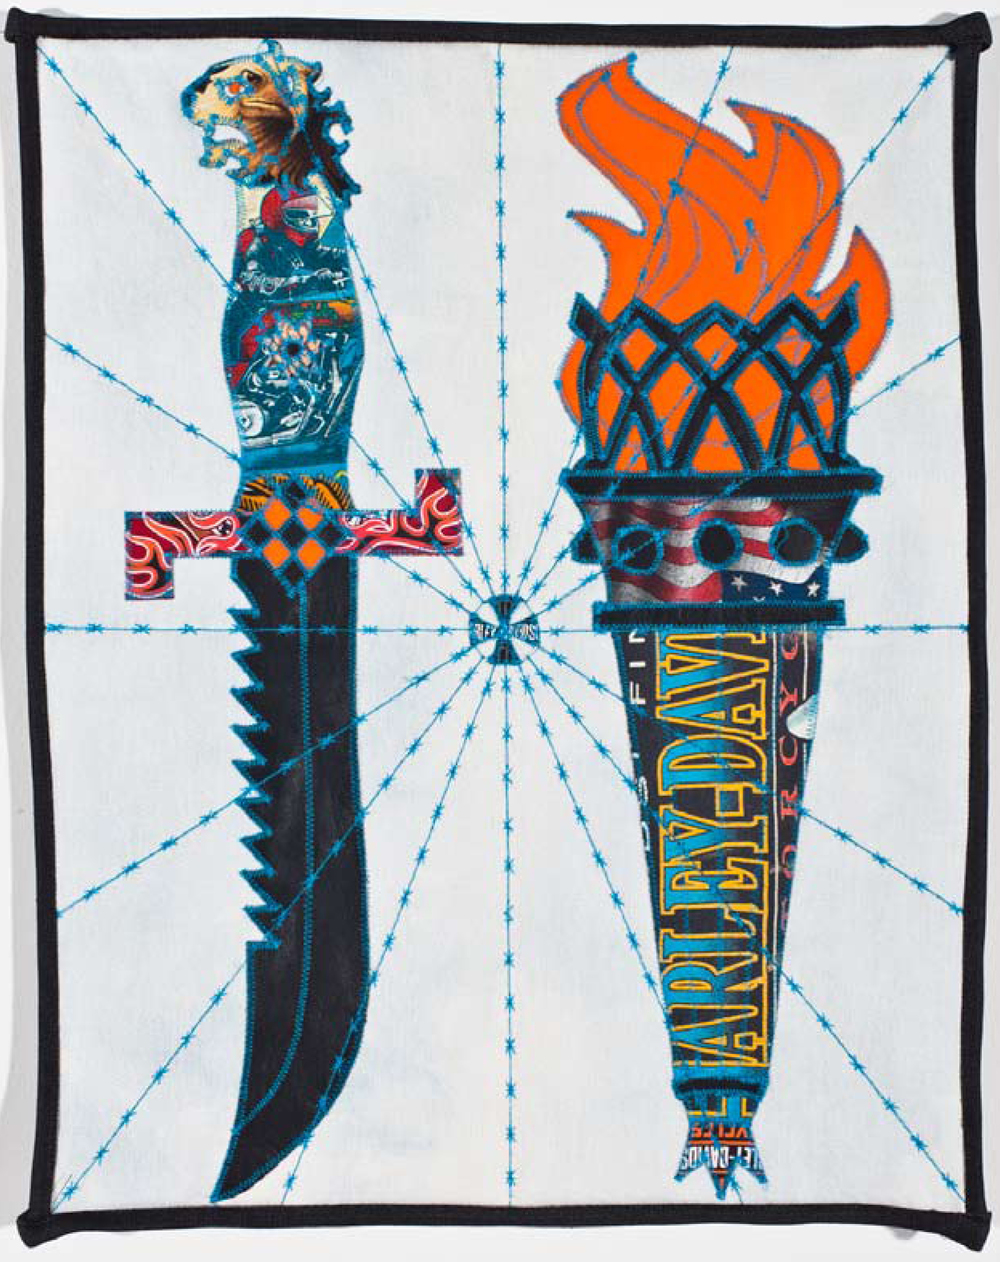 "Ben Venom, I Carry the Flame, 2013,Harley Davidson t-shirts, leather, and denim, hand-made quilt, 15"" x 19."" Collection of Matt Gonzalez."